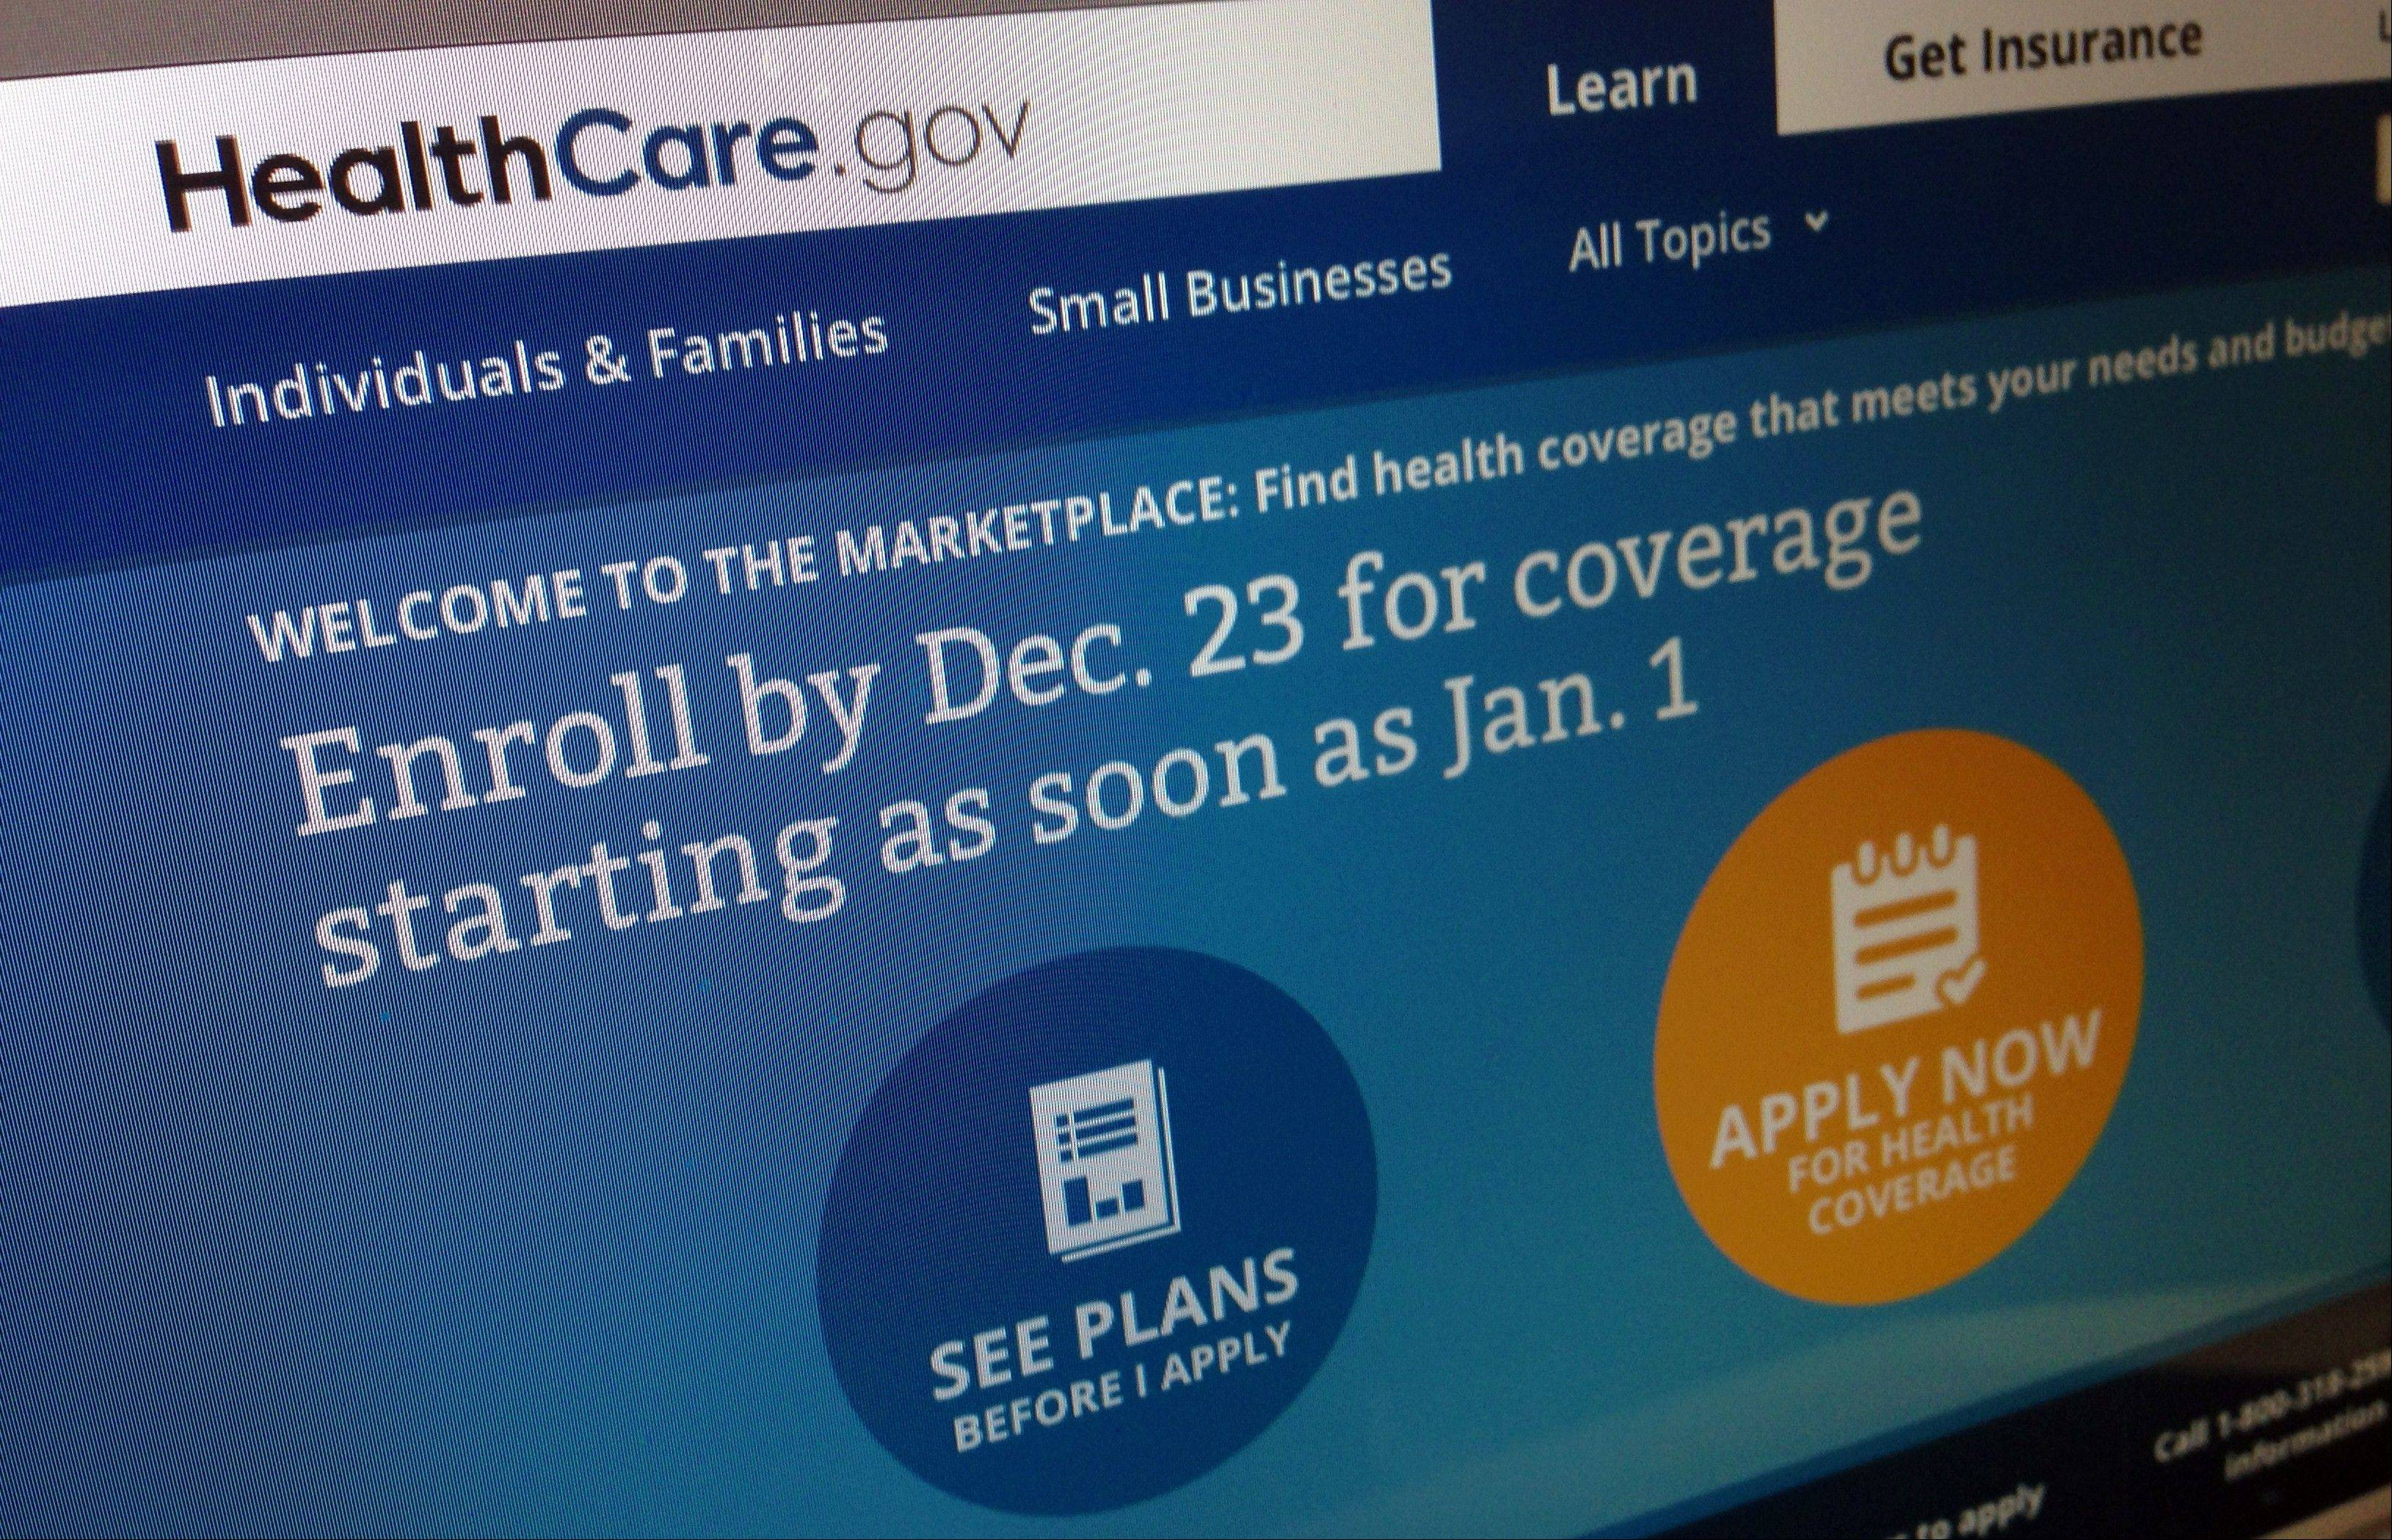 Health insurance coverage: What's next?